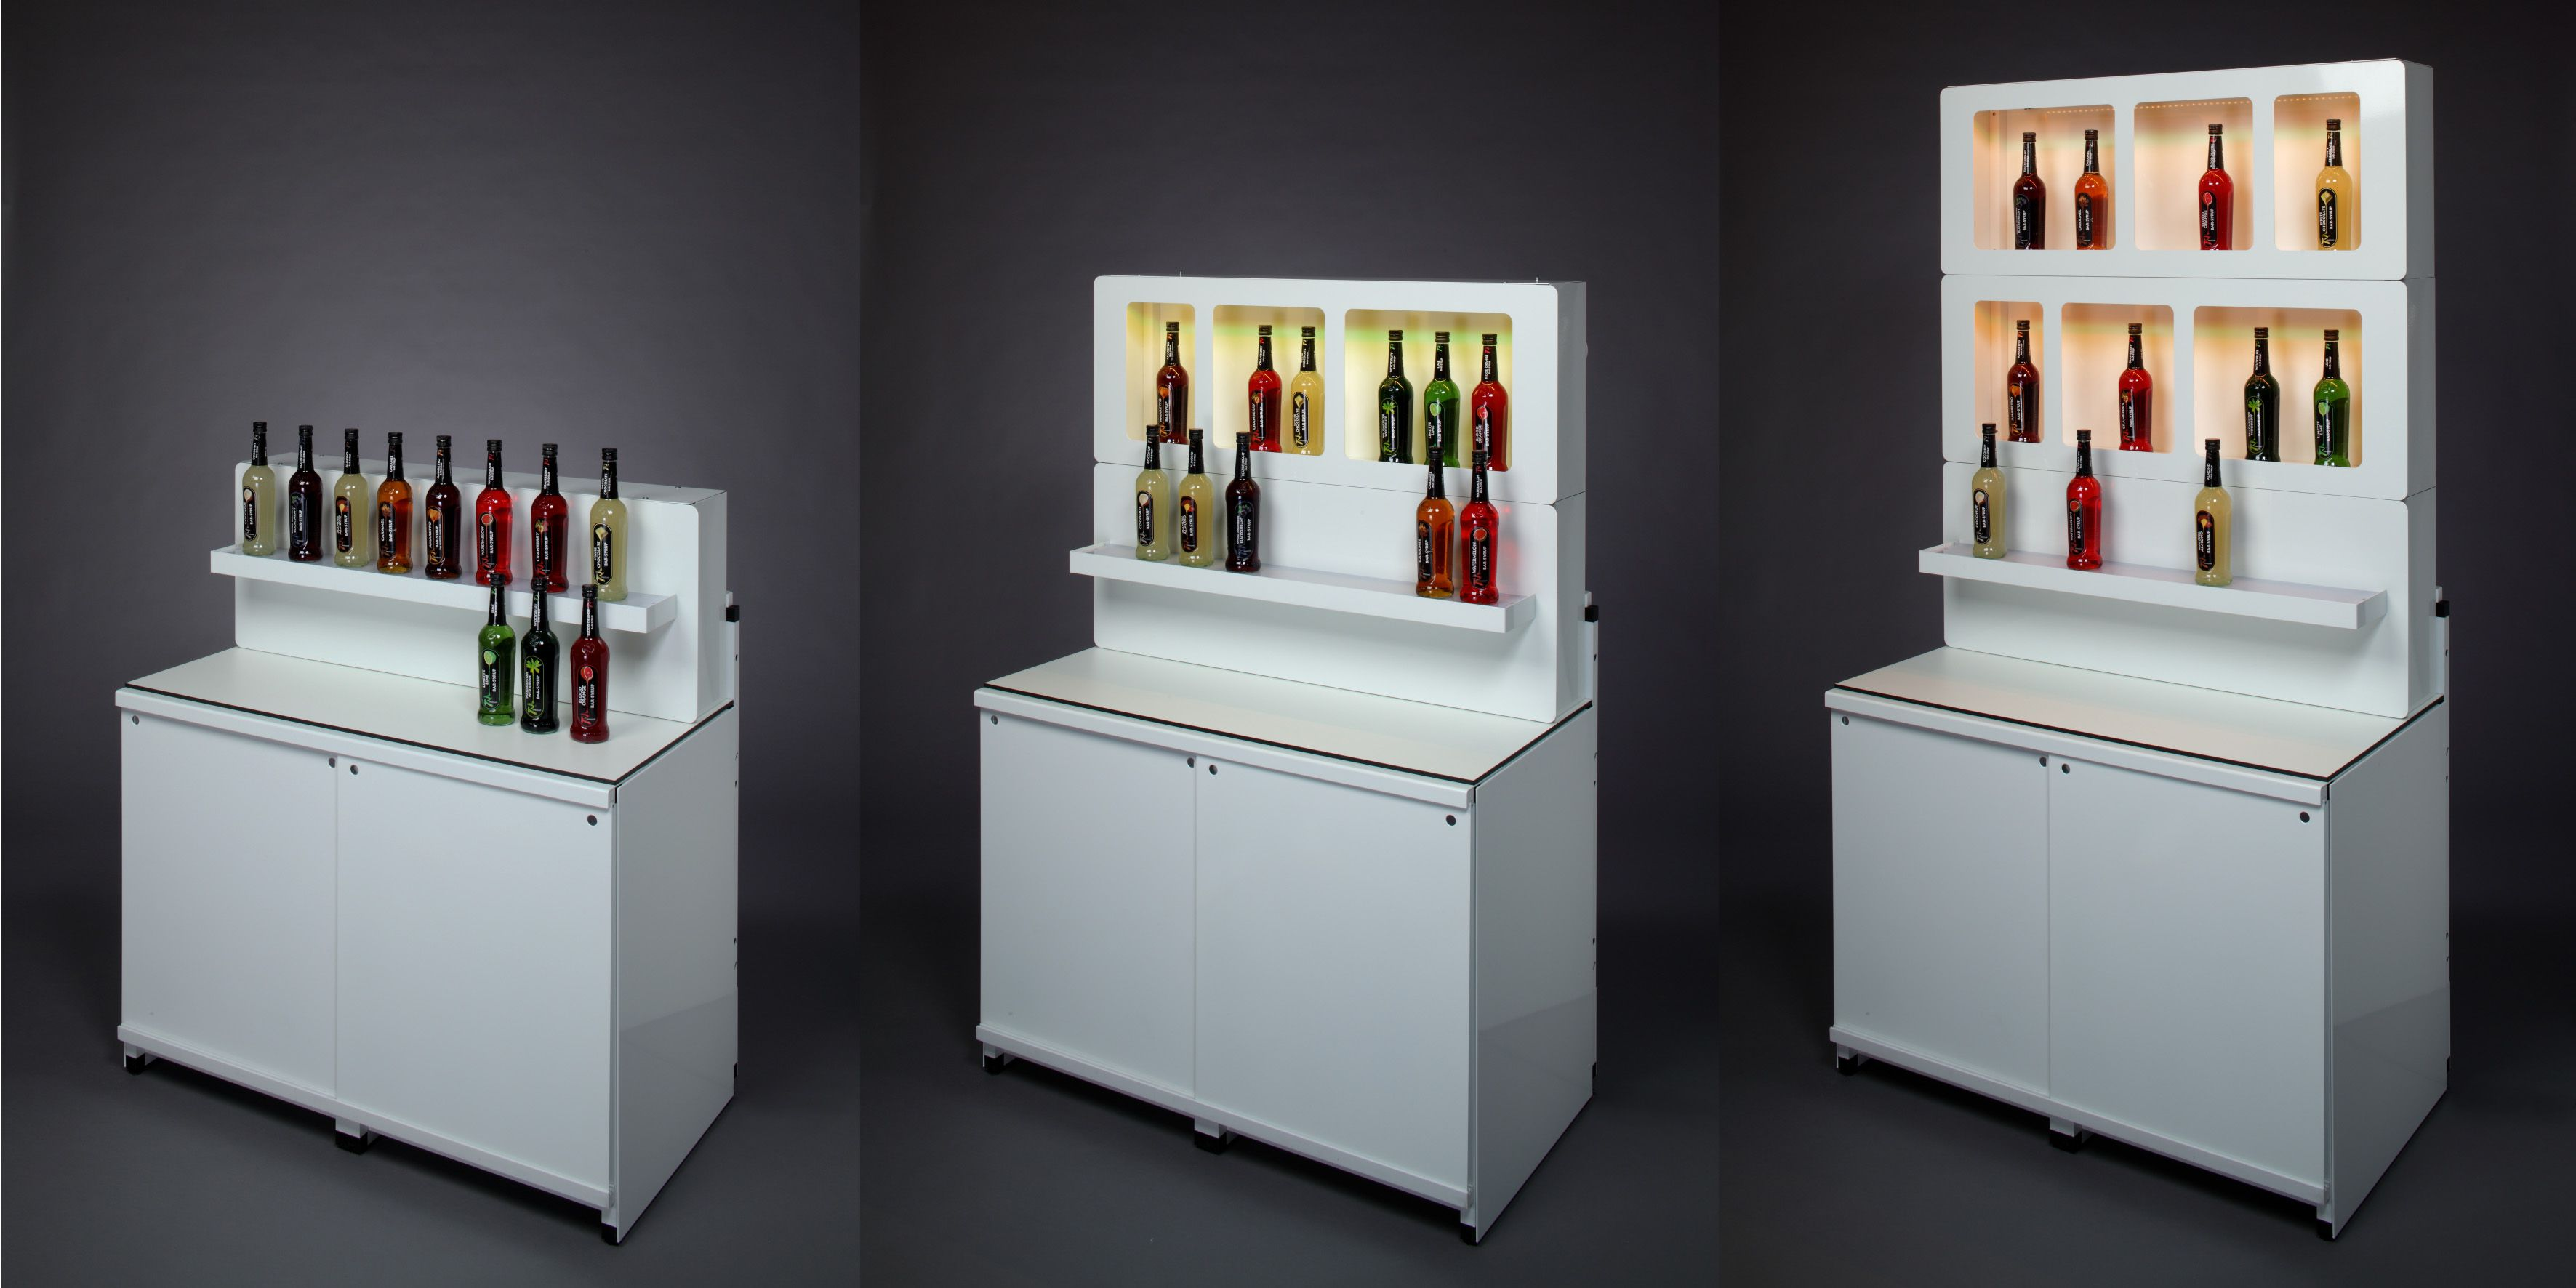 G Raxx Modular Bar Without Bartop And Used As A Backbar With Bottle Displays